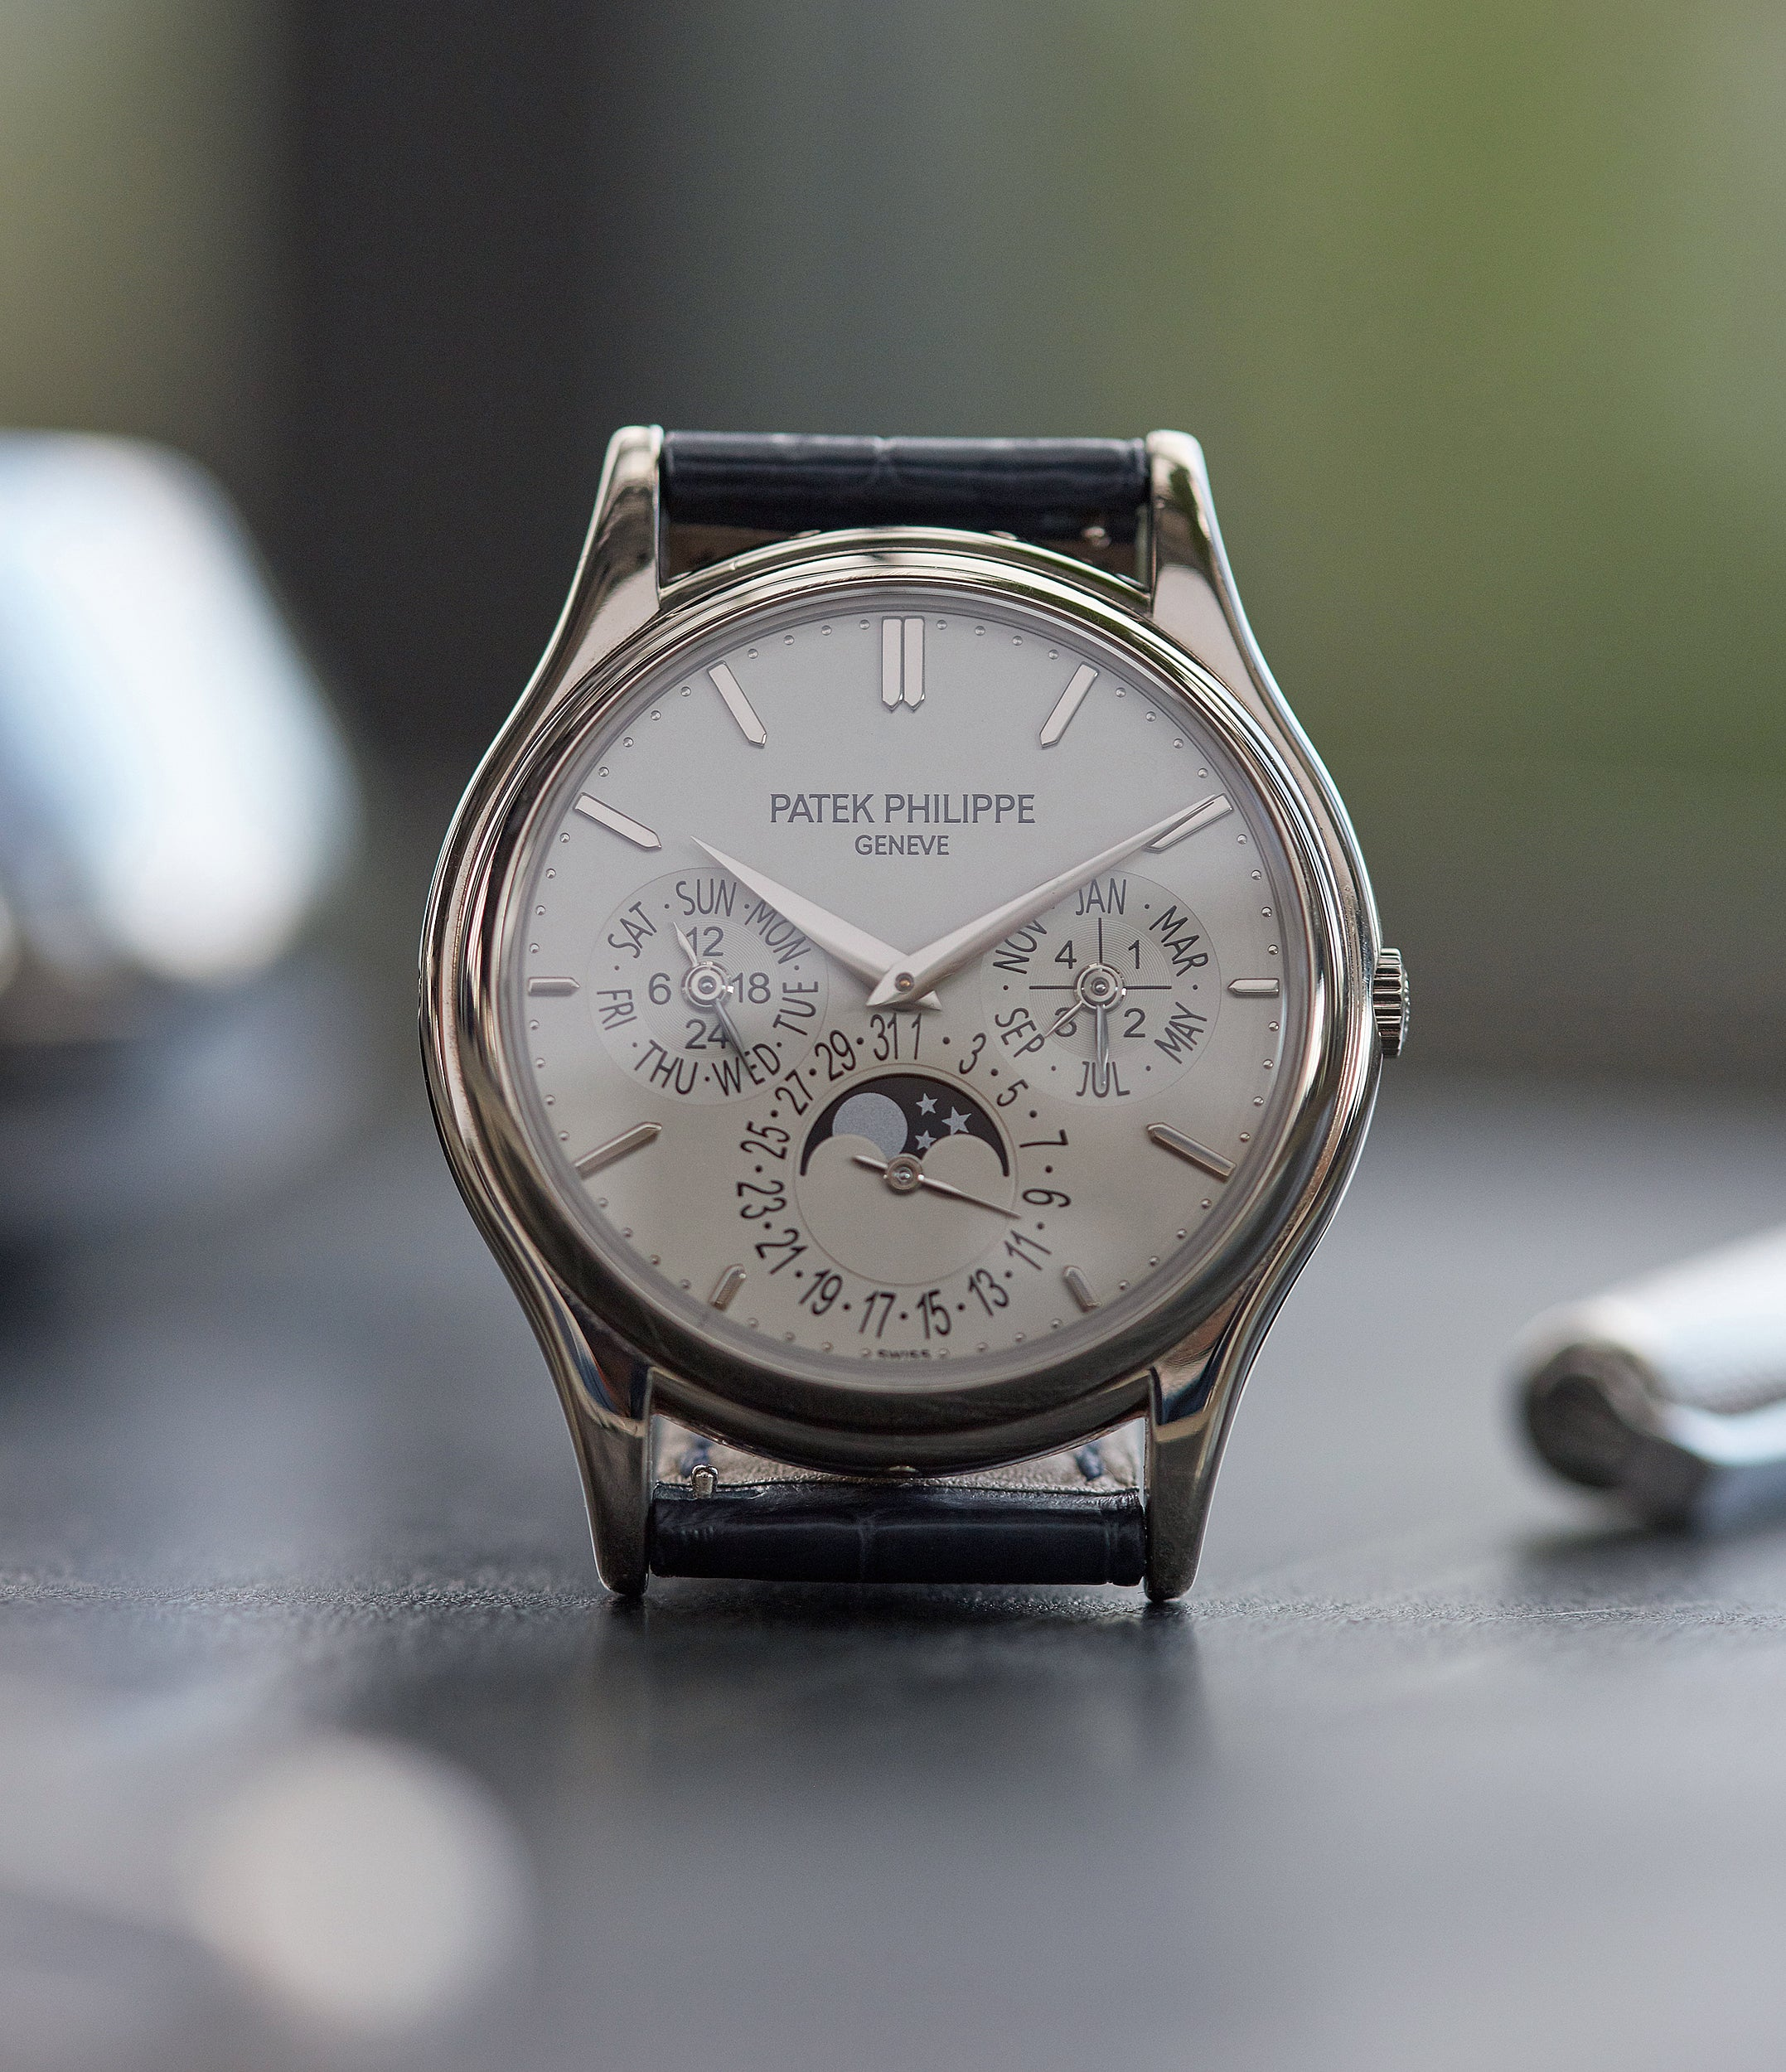 5140G Patek Philippe Perpetual Calendar moonphase white gold silver dial pre-owned dress watch for sale online A Collected Man London UK specialist rare watches